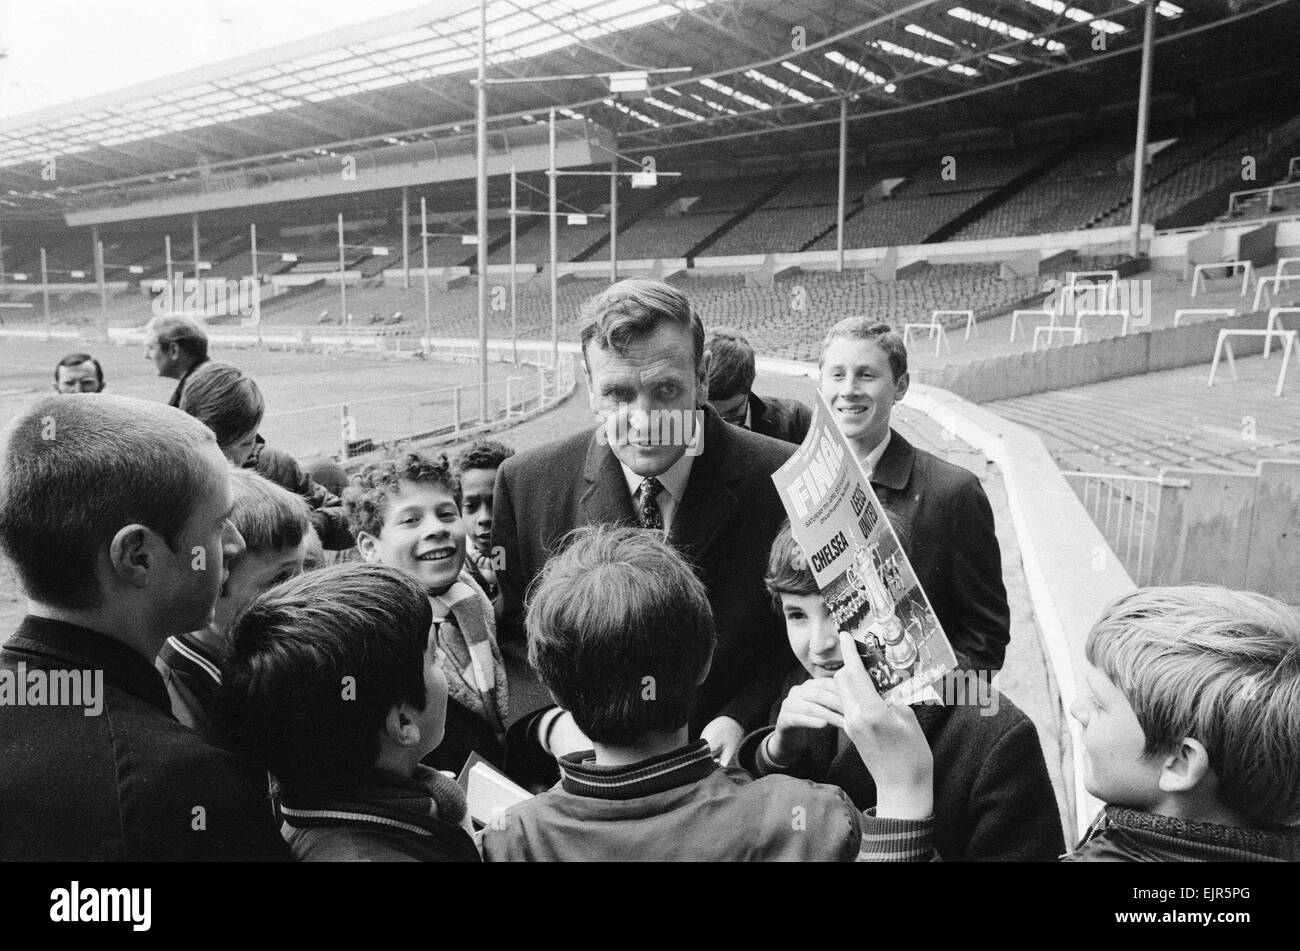 Don Revie Leeds United manager pays a quick visit to Wembley for check on the ground conditions and dressing rooms - Stock Image